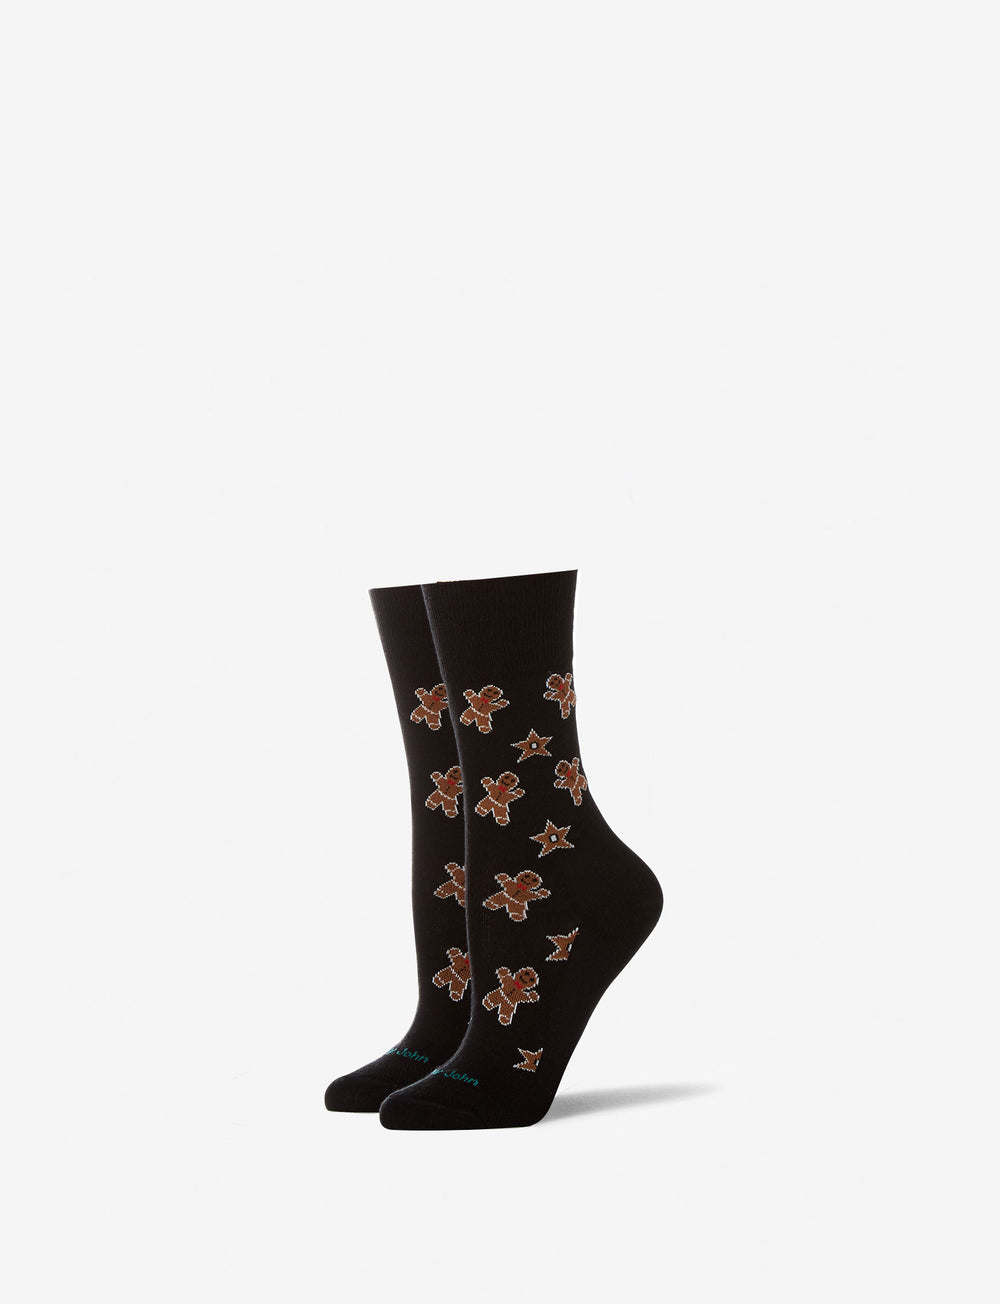 Women's Gingerbread Stay Up Dress Sock Details Image